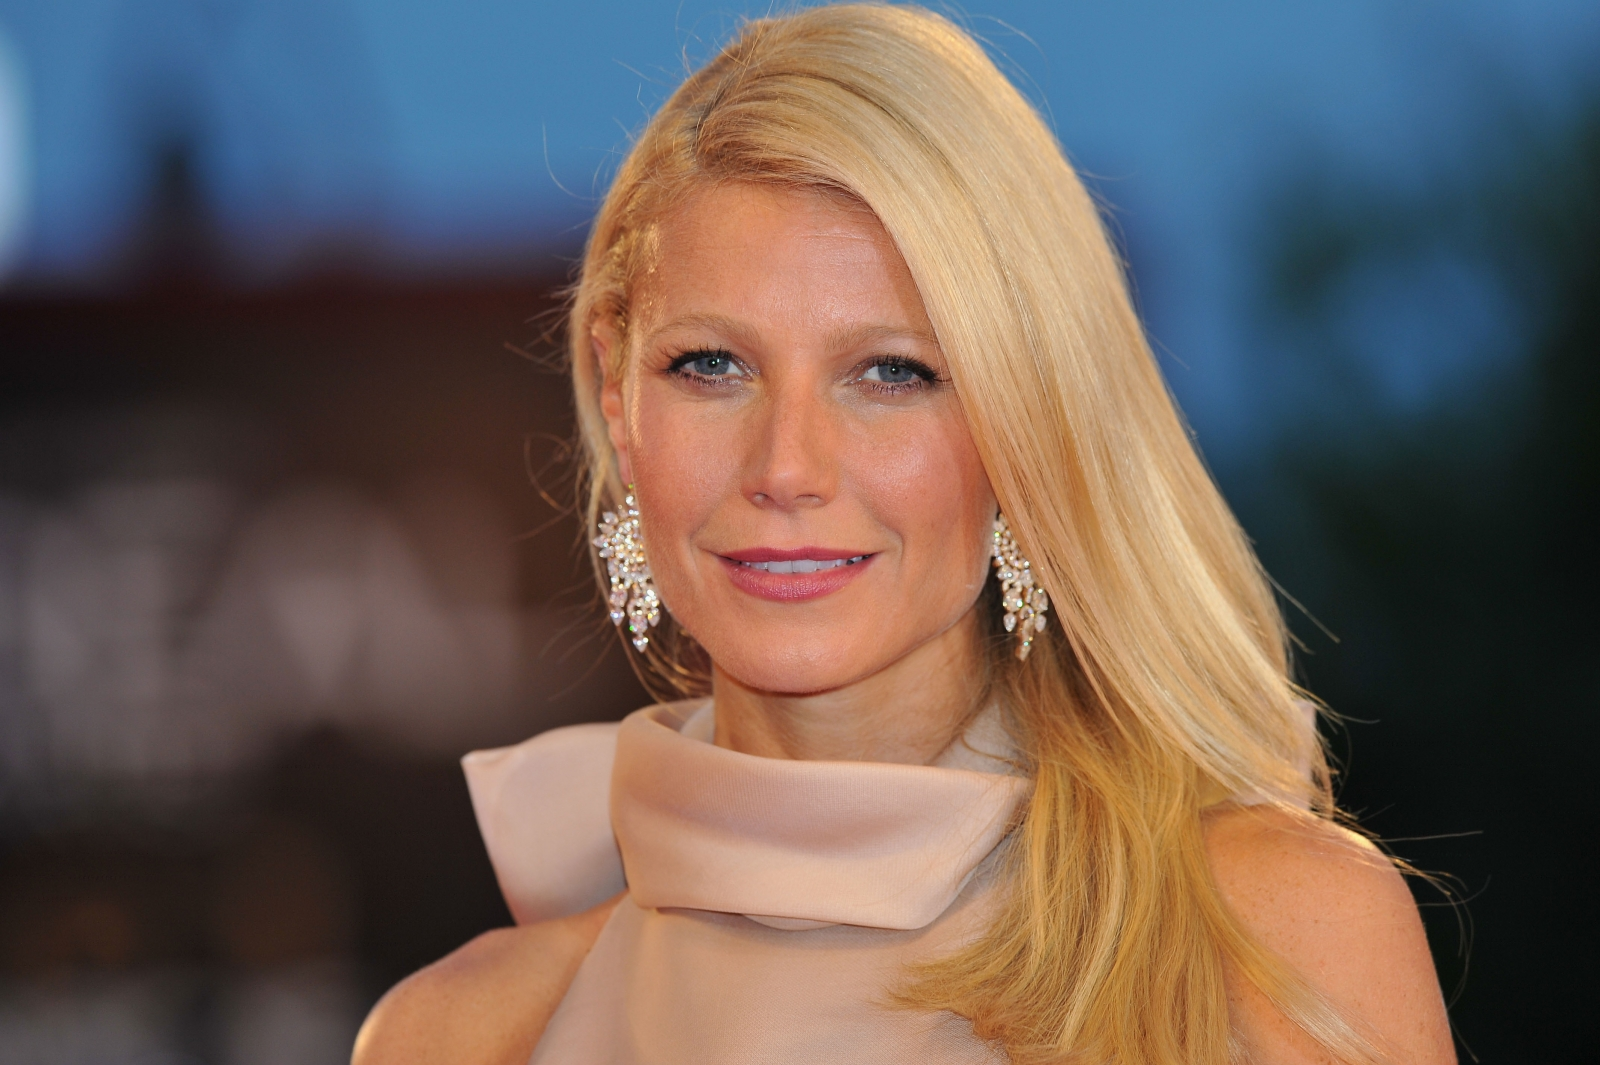 Gwyneth Paltrow attends the 'Contagion' premiere